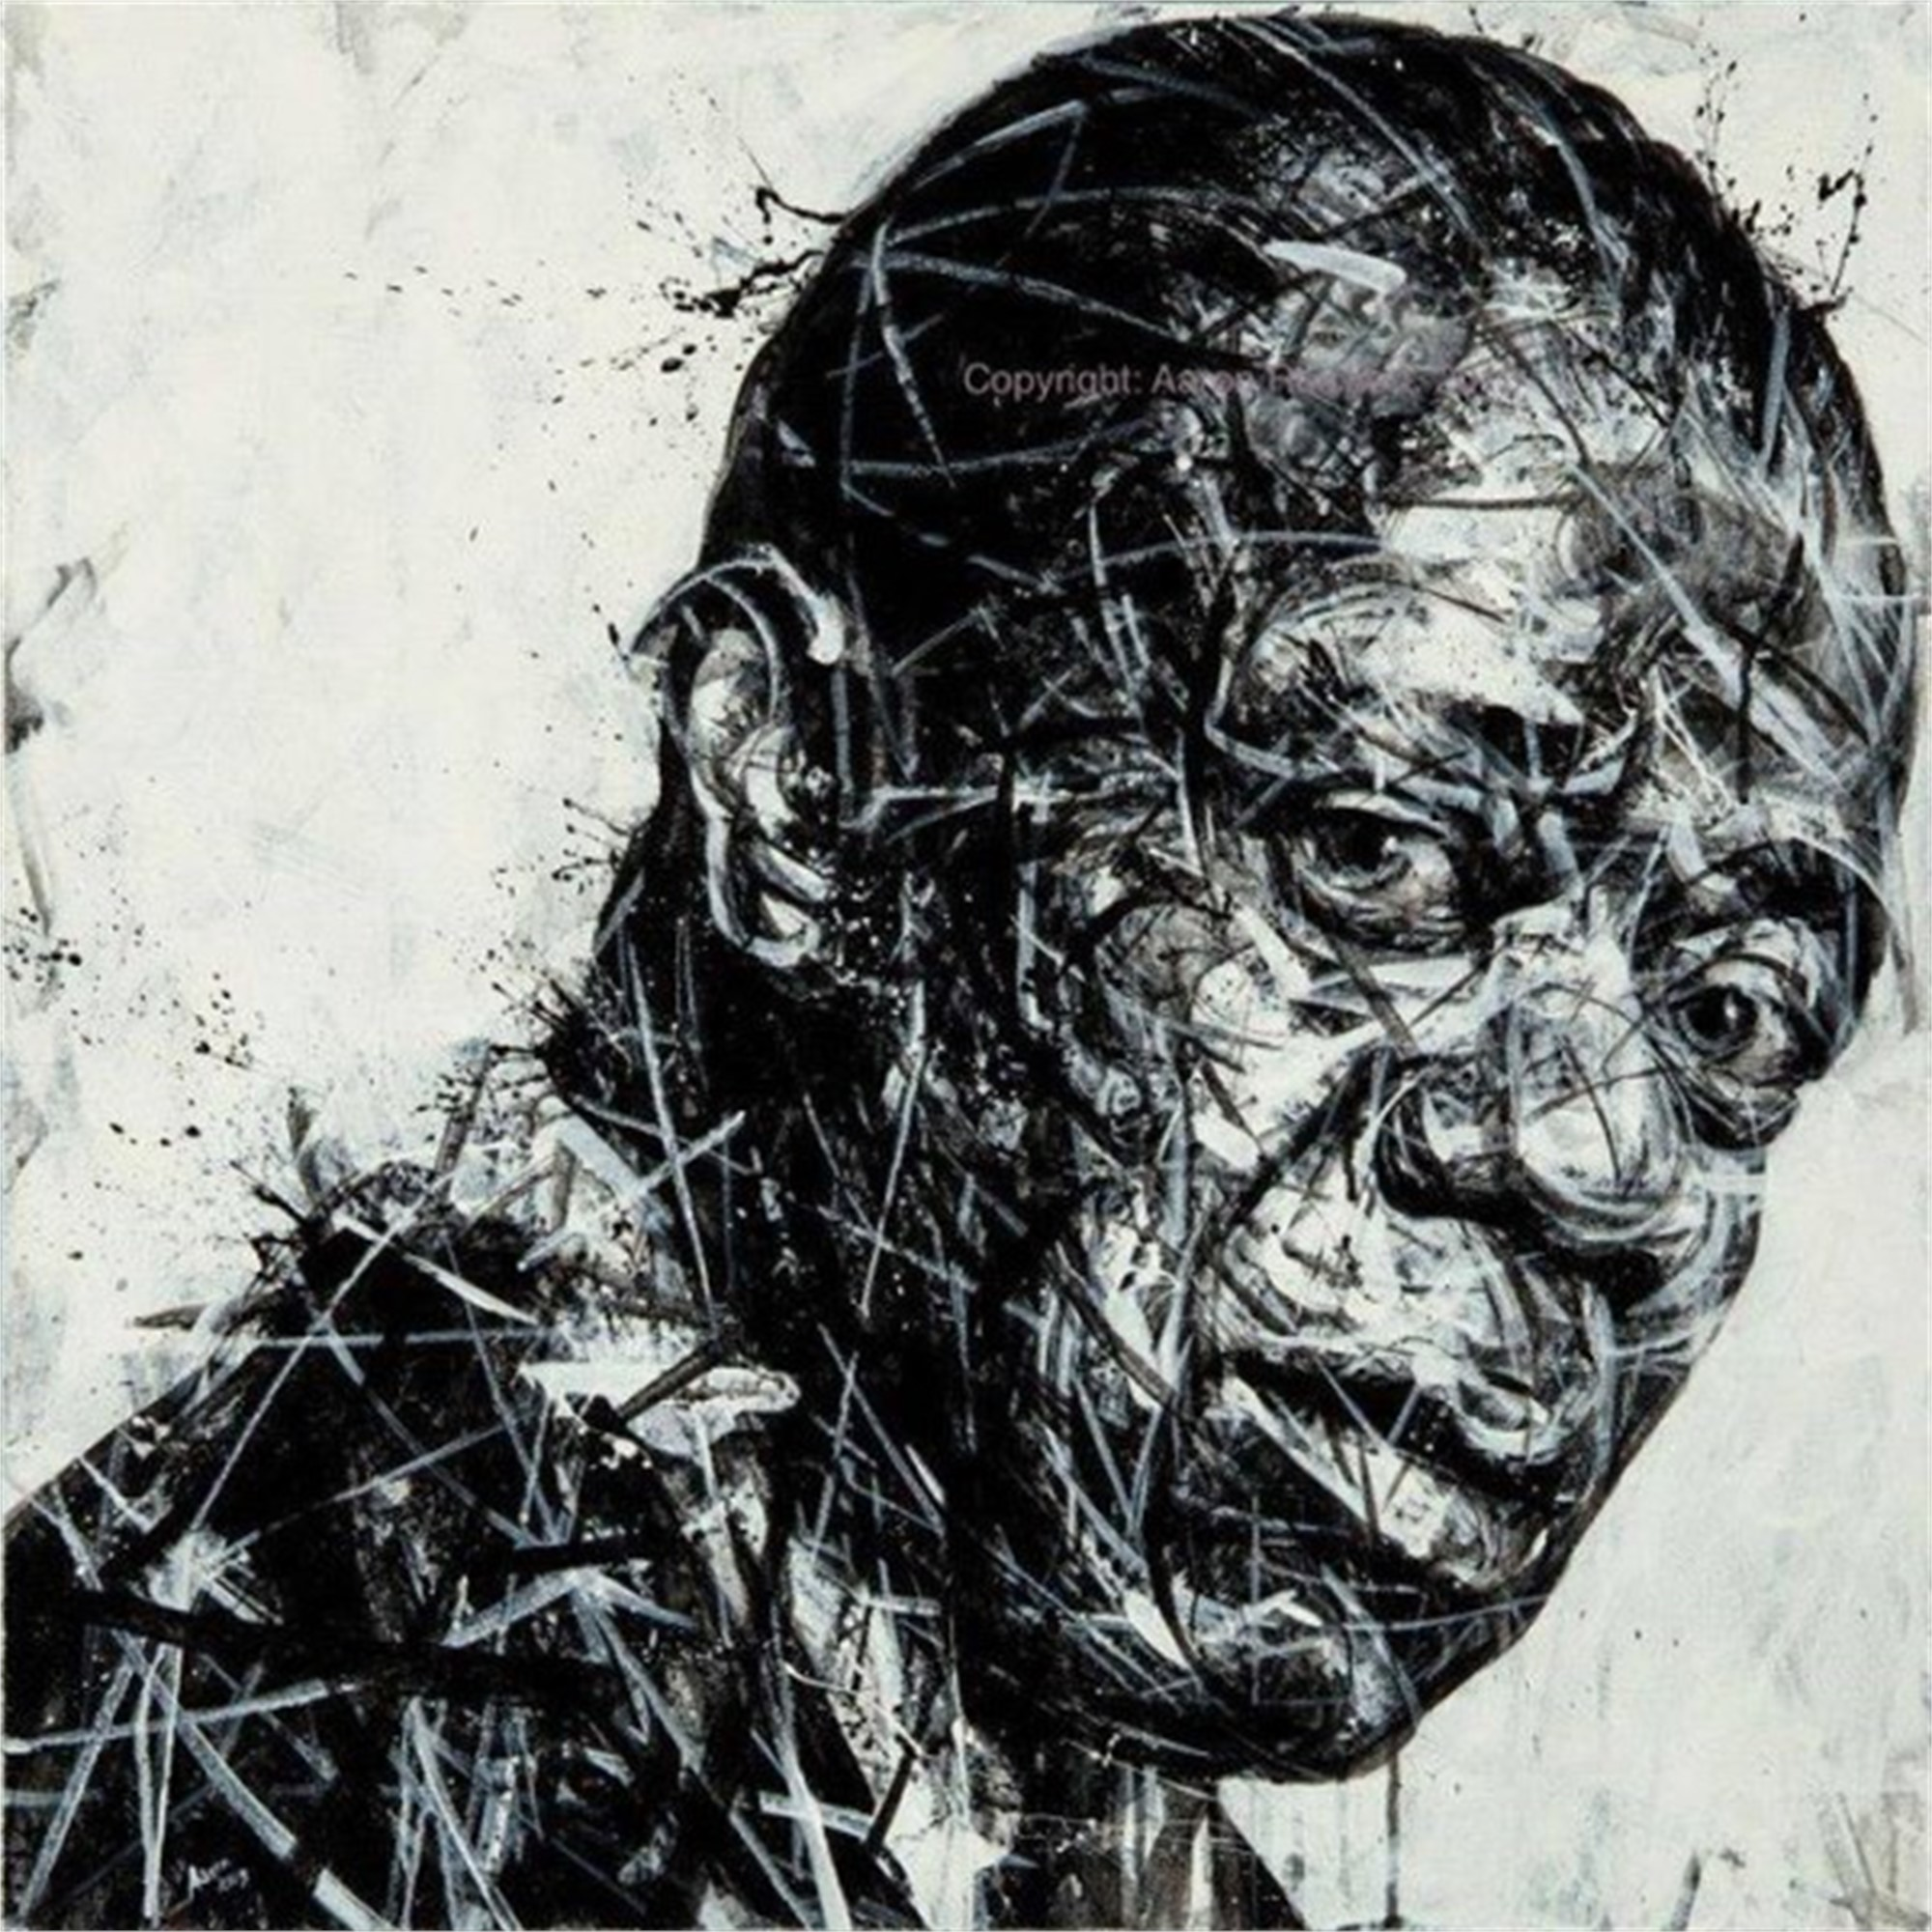 Louis Armstrong Study by Aaron Reichert